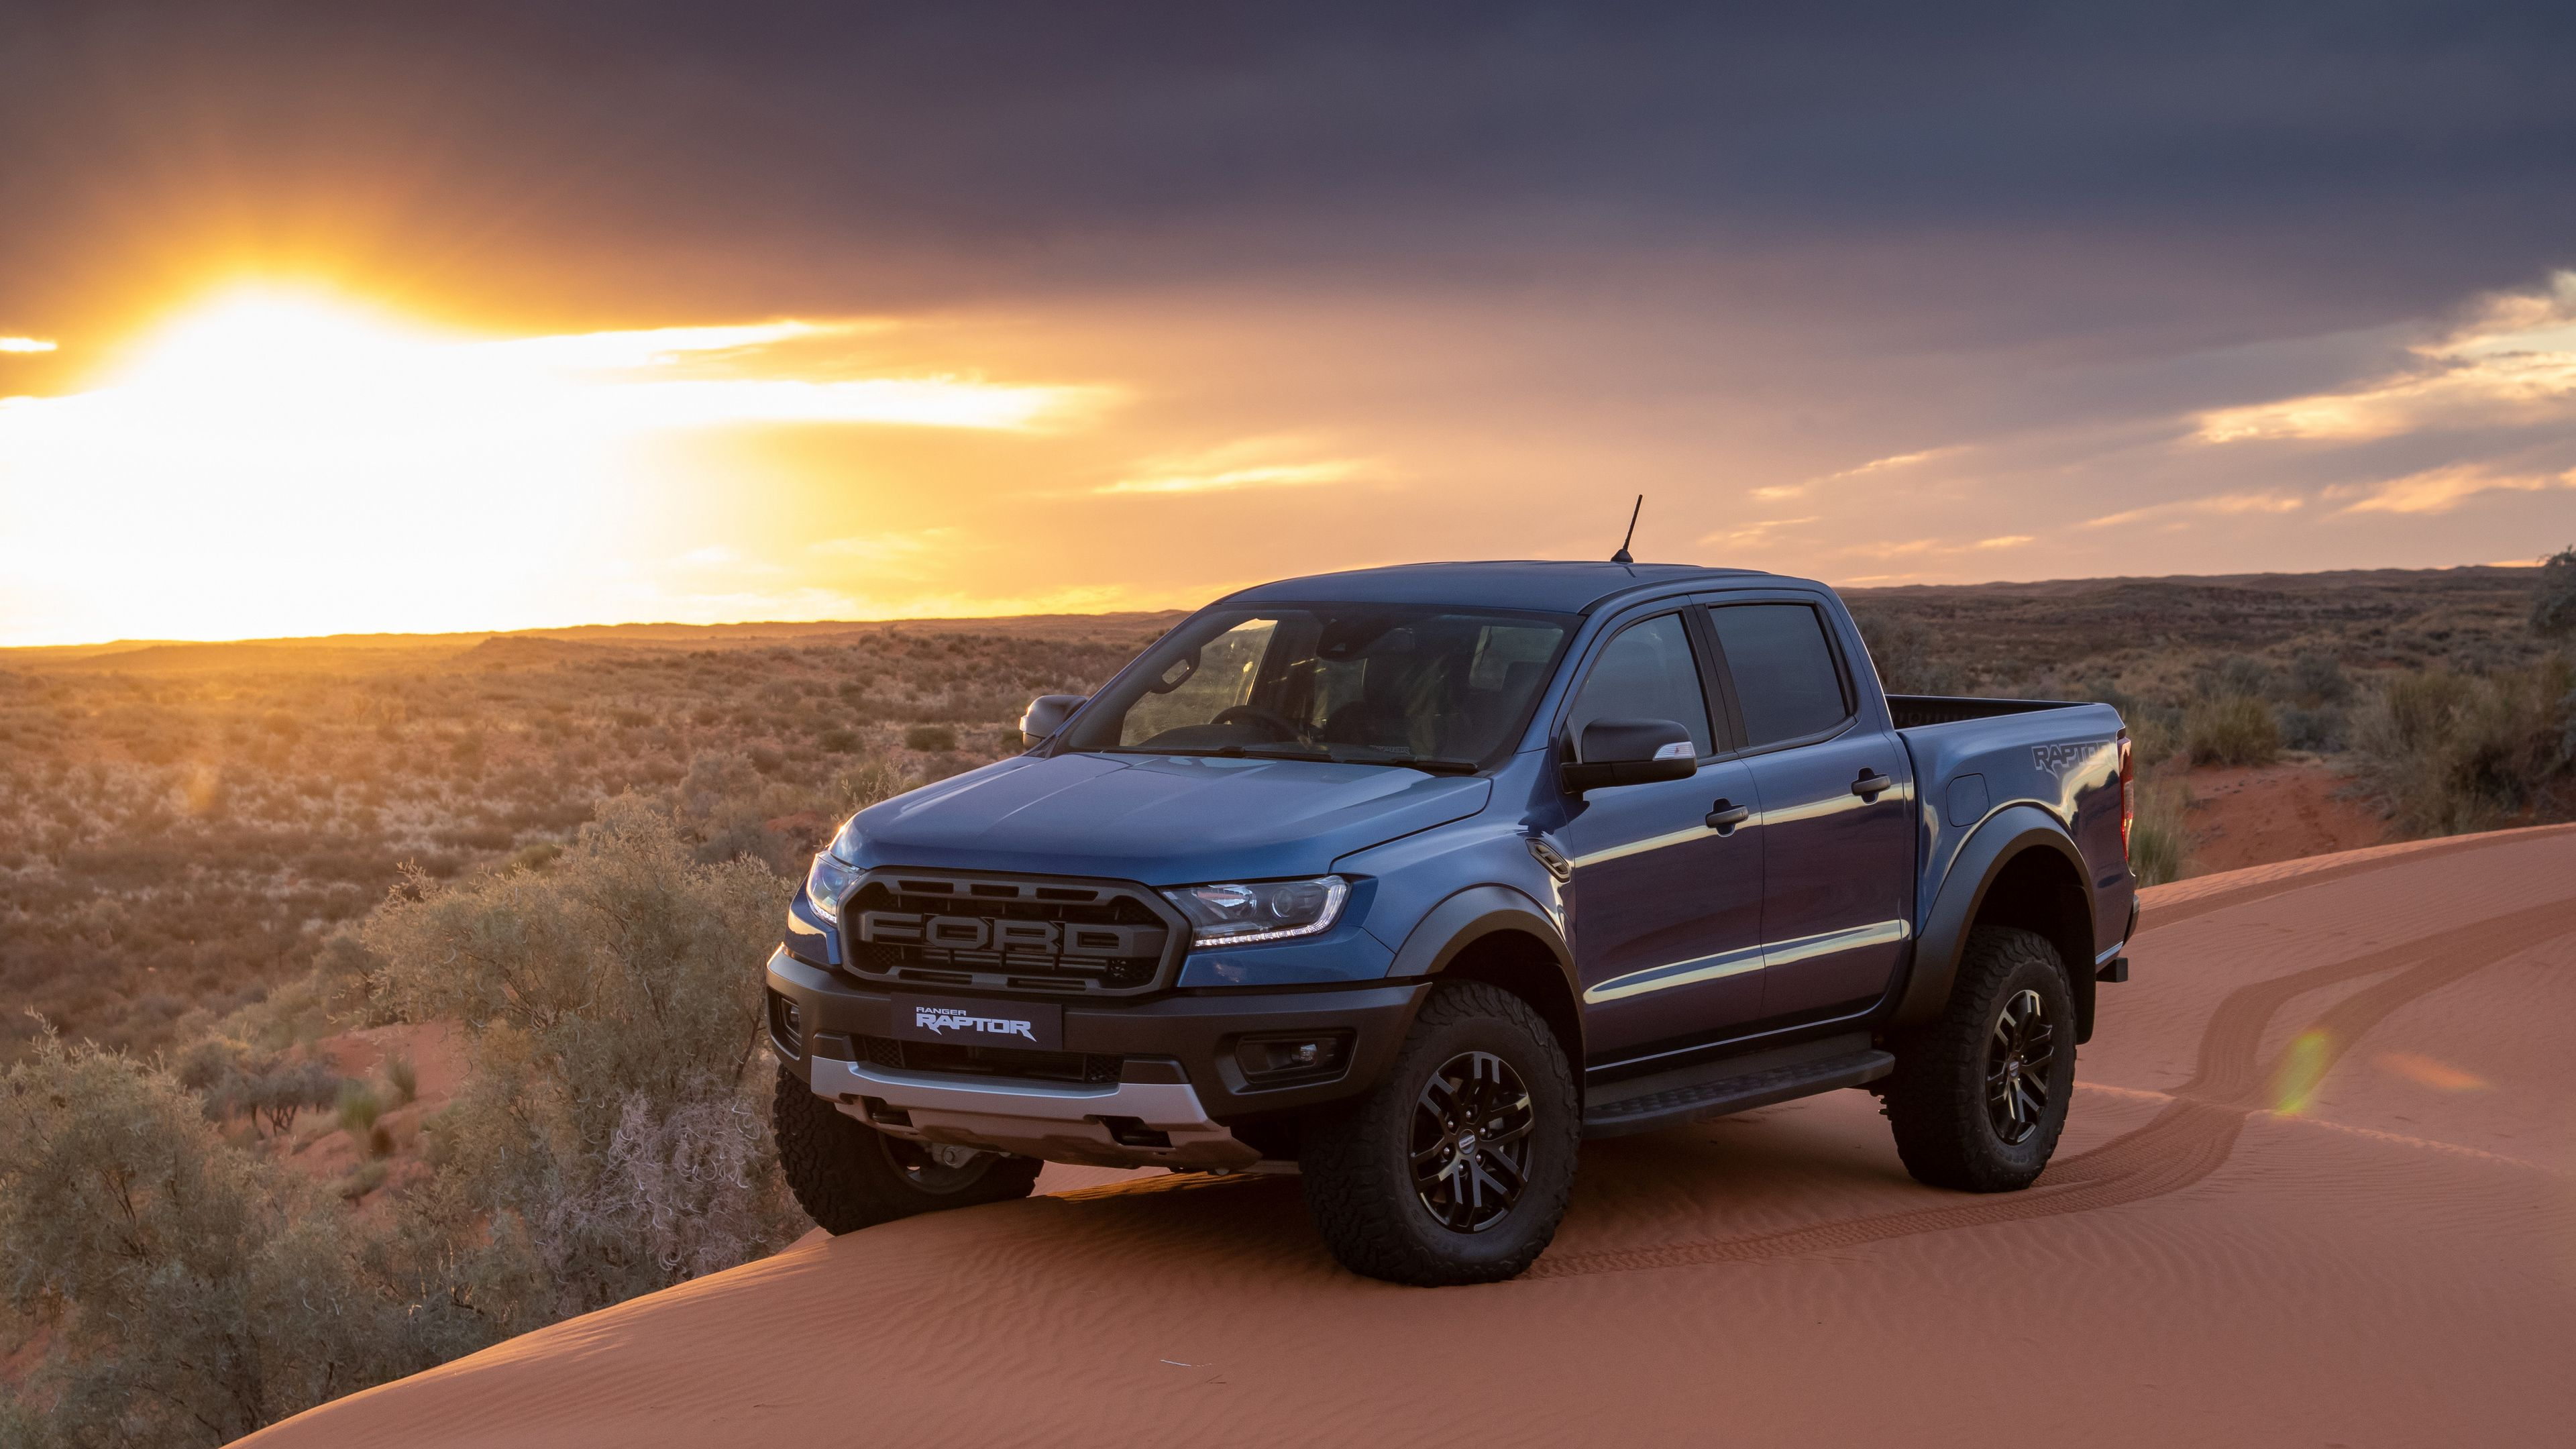 Ford Ranger Raptor 2019 4k Truck Wallpapers Hd Wallpapers Ford